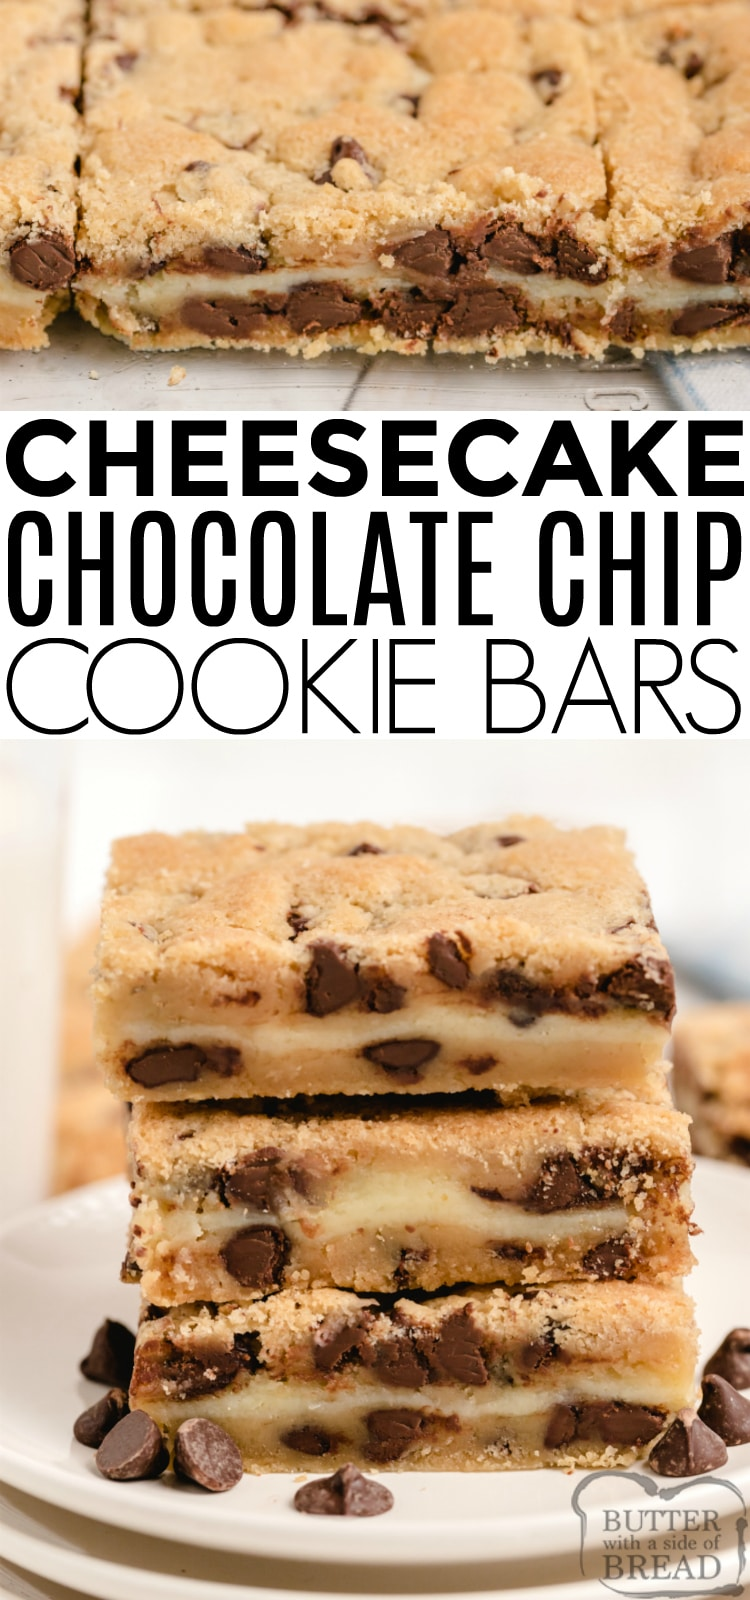 Cheesecake Chocolate Chip Cookie Bars combine a delicious chocolate chip cookie recipe with a layer of cheesecake to make a dessert that is the best of both worlds! This amazing bar cookie recipe is simple to make and a hit at every party!